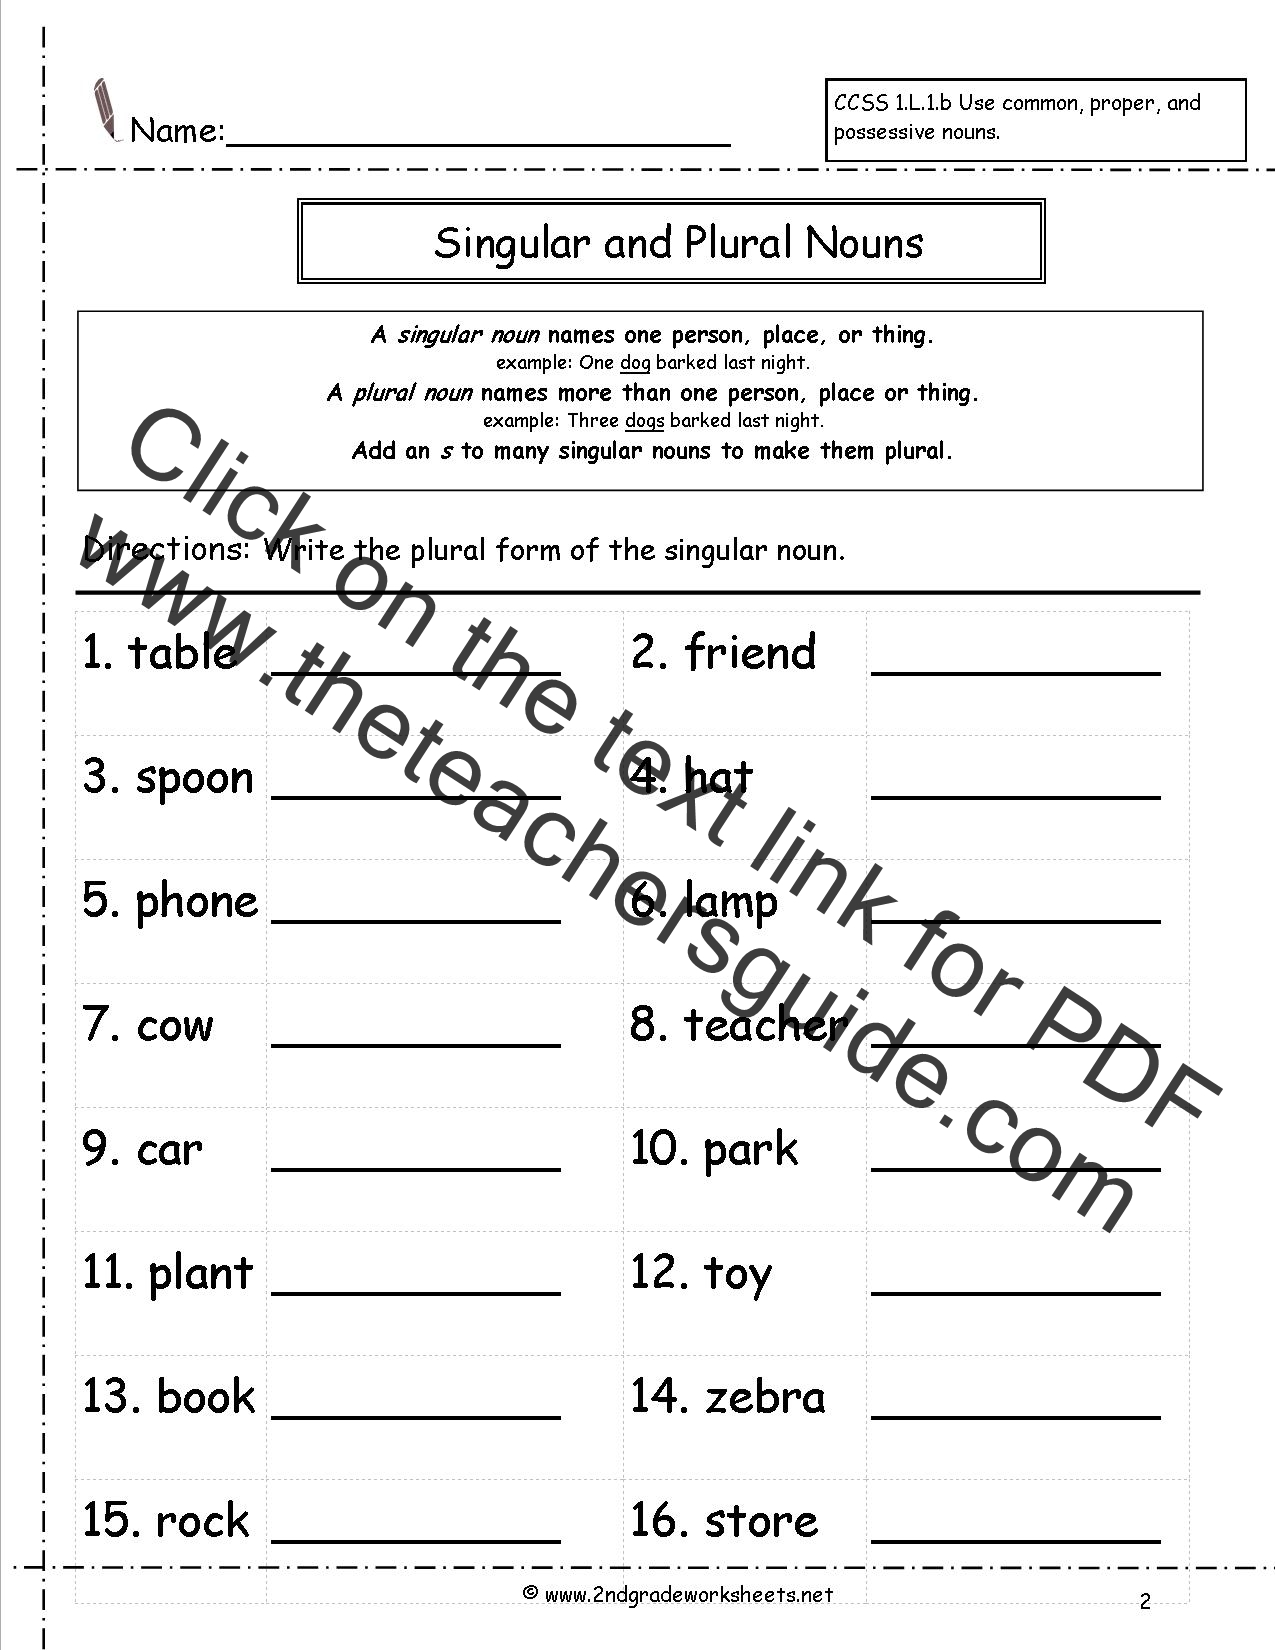 Worksheets Plural Nouns Worksheets singular and plural nouns worksheets